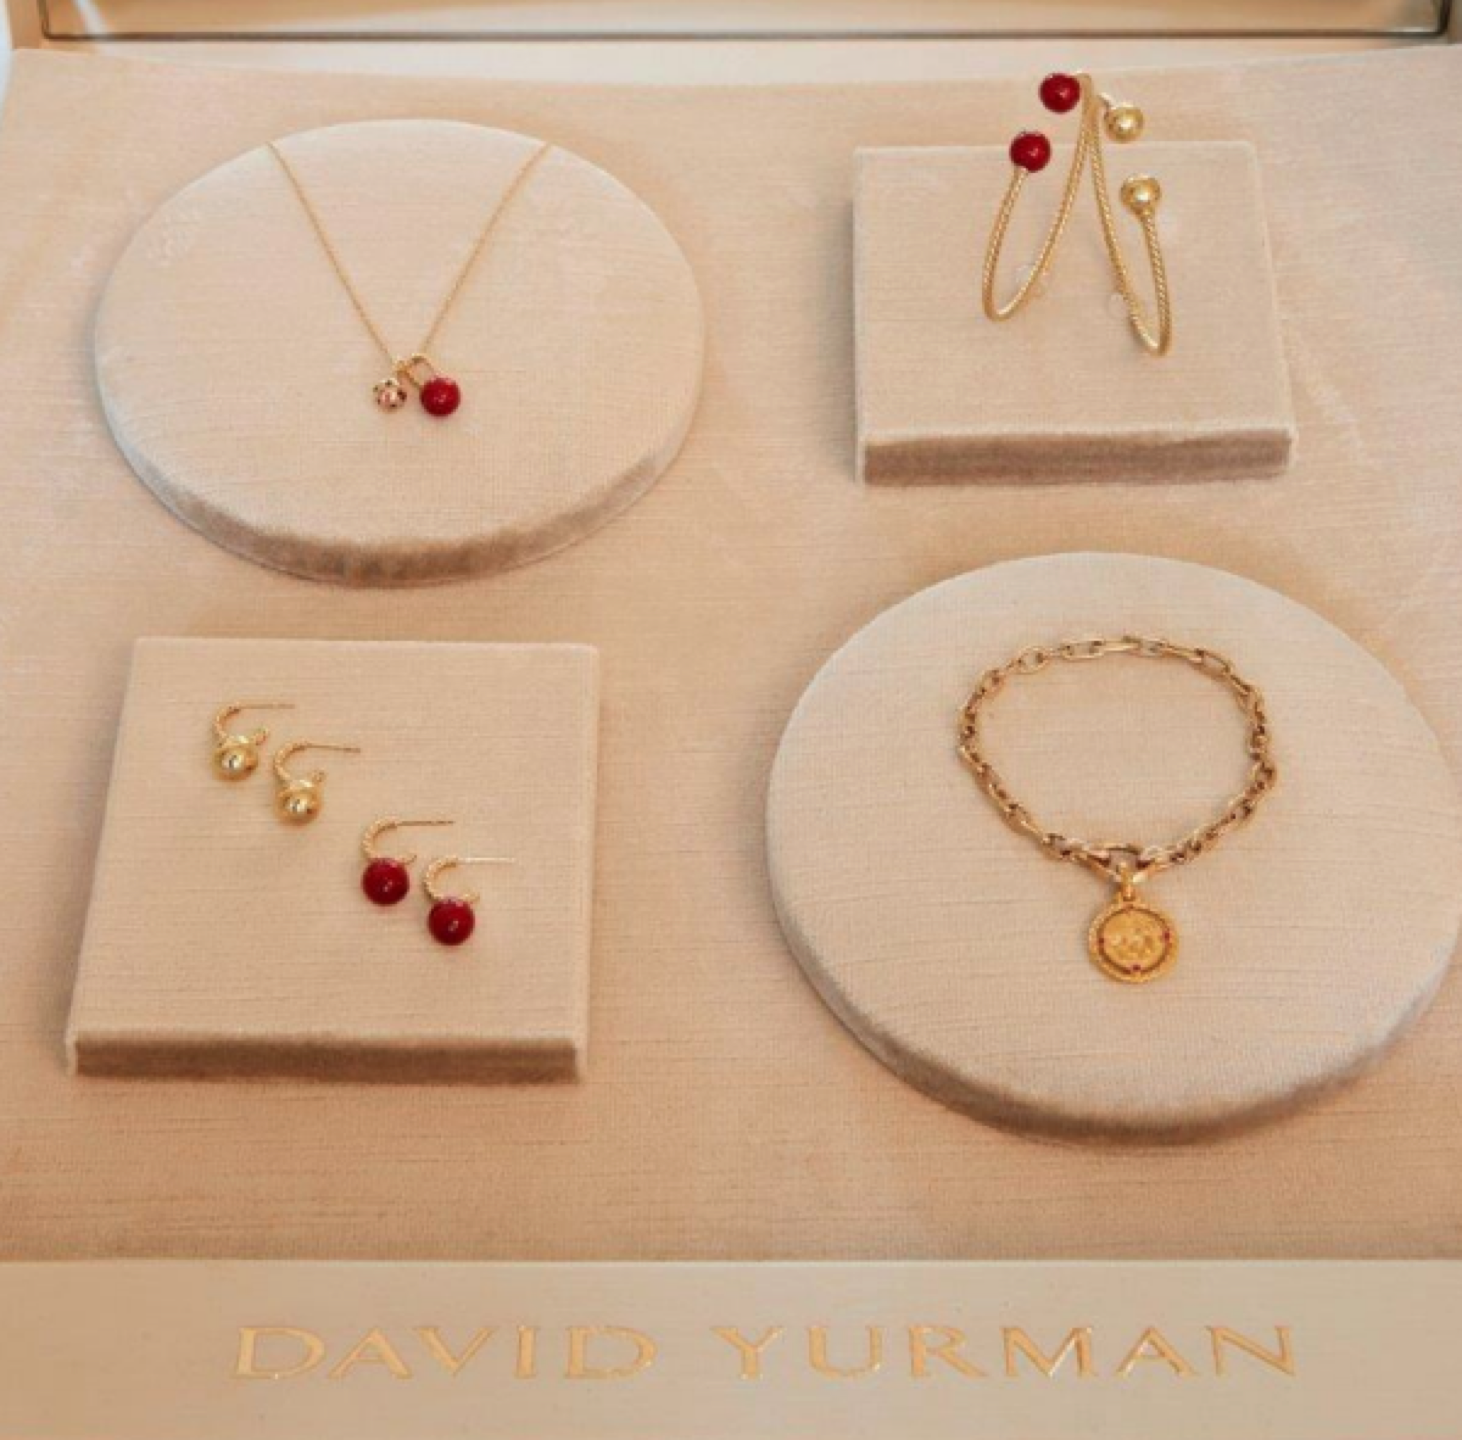 David Yurman High Jewelry Presentation